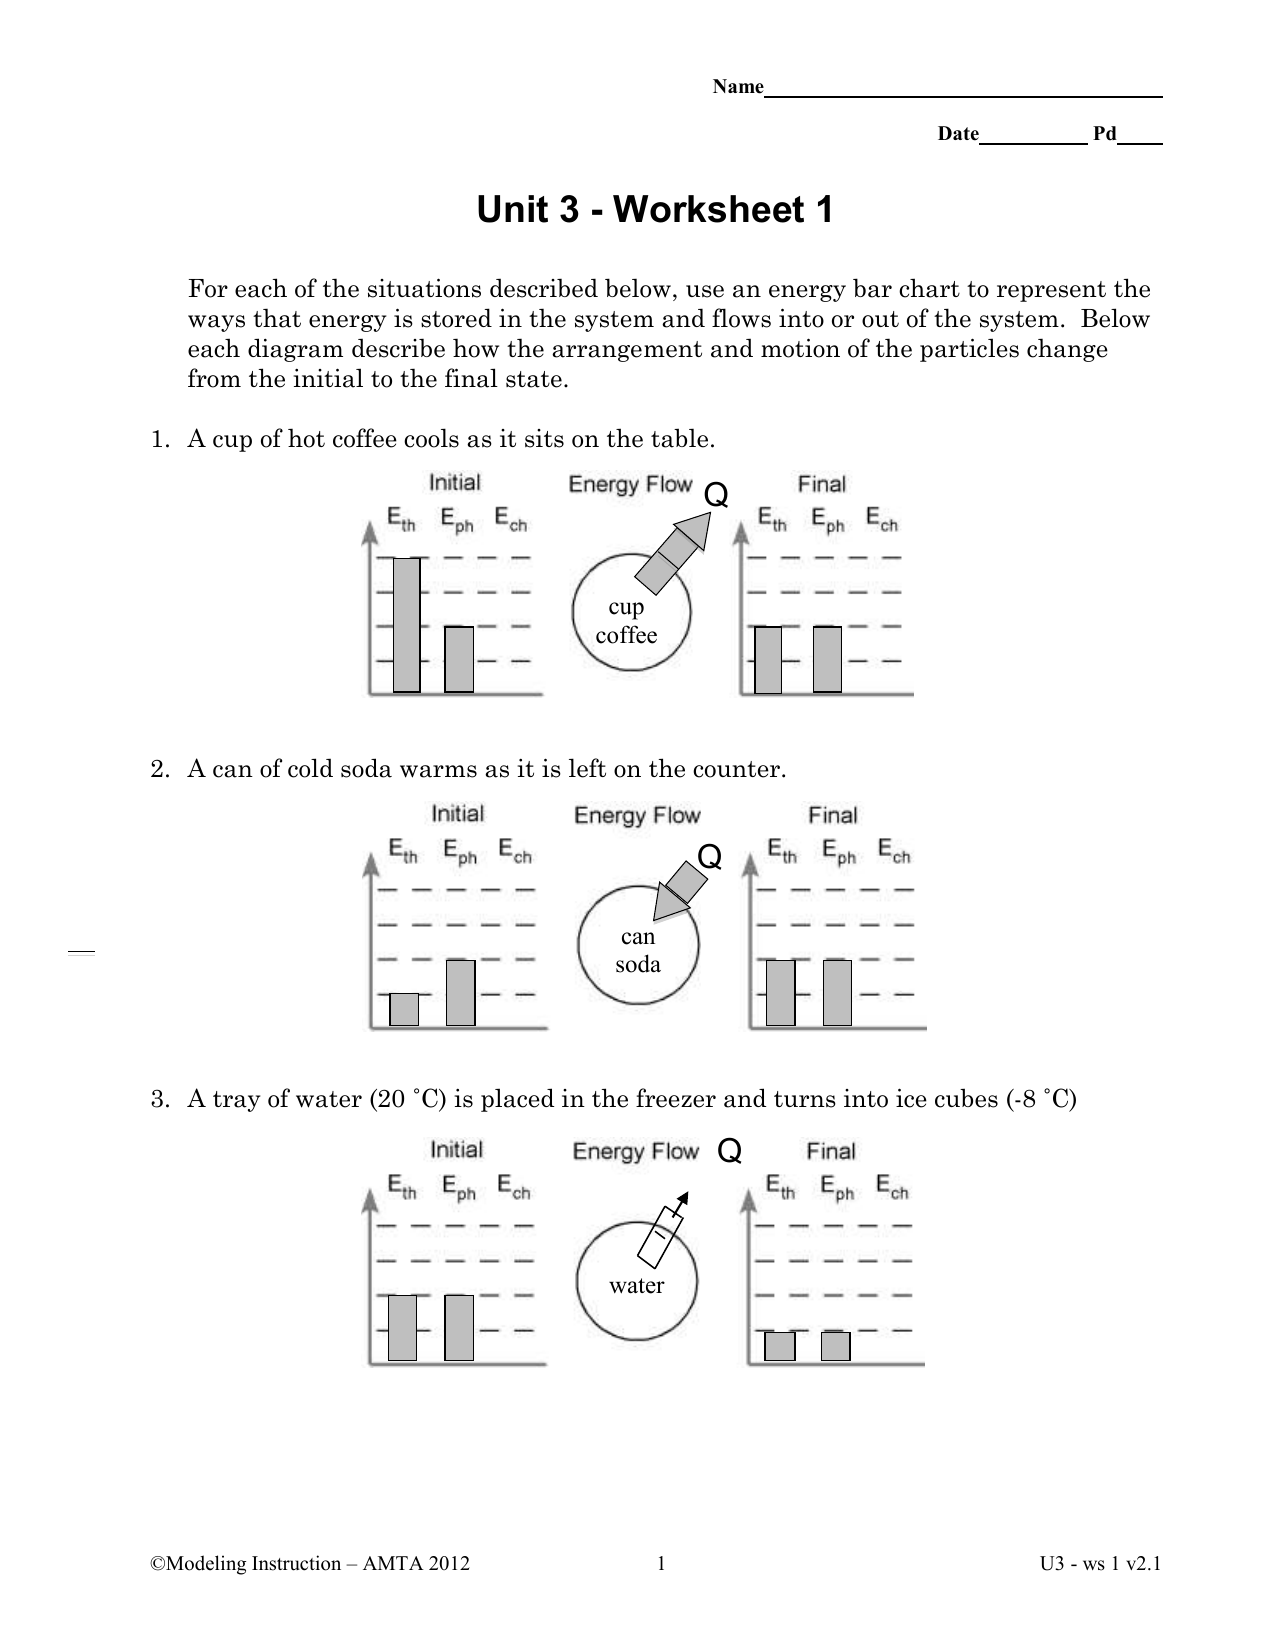 Unit 3 - Worksheet 1